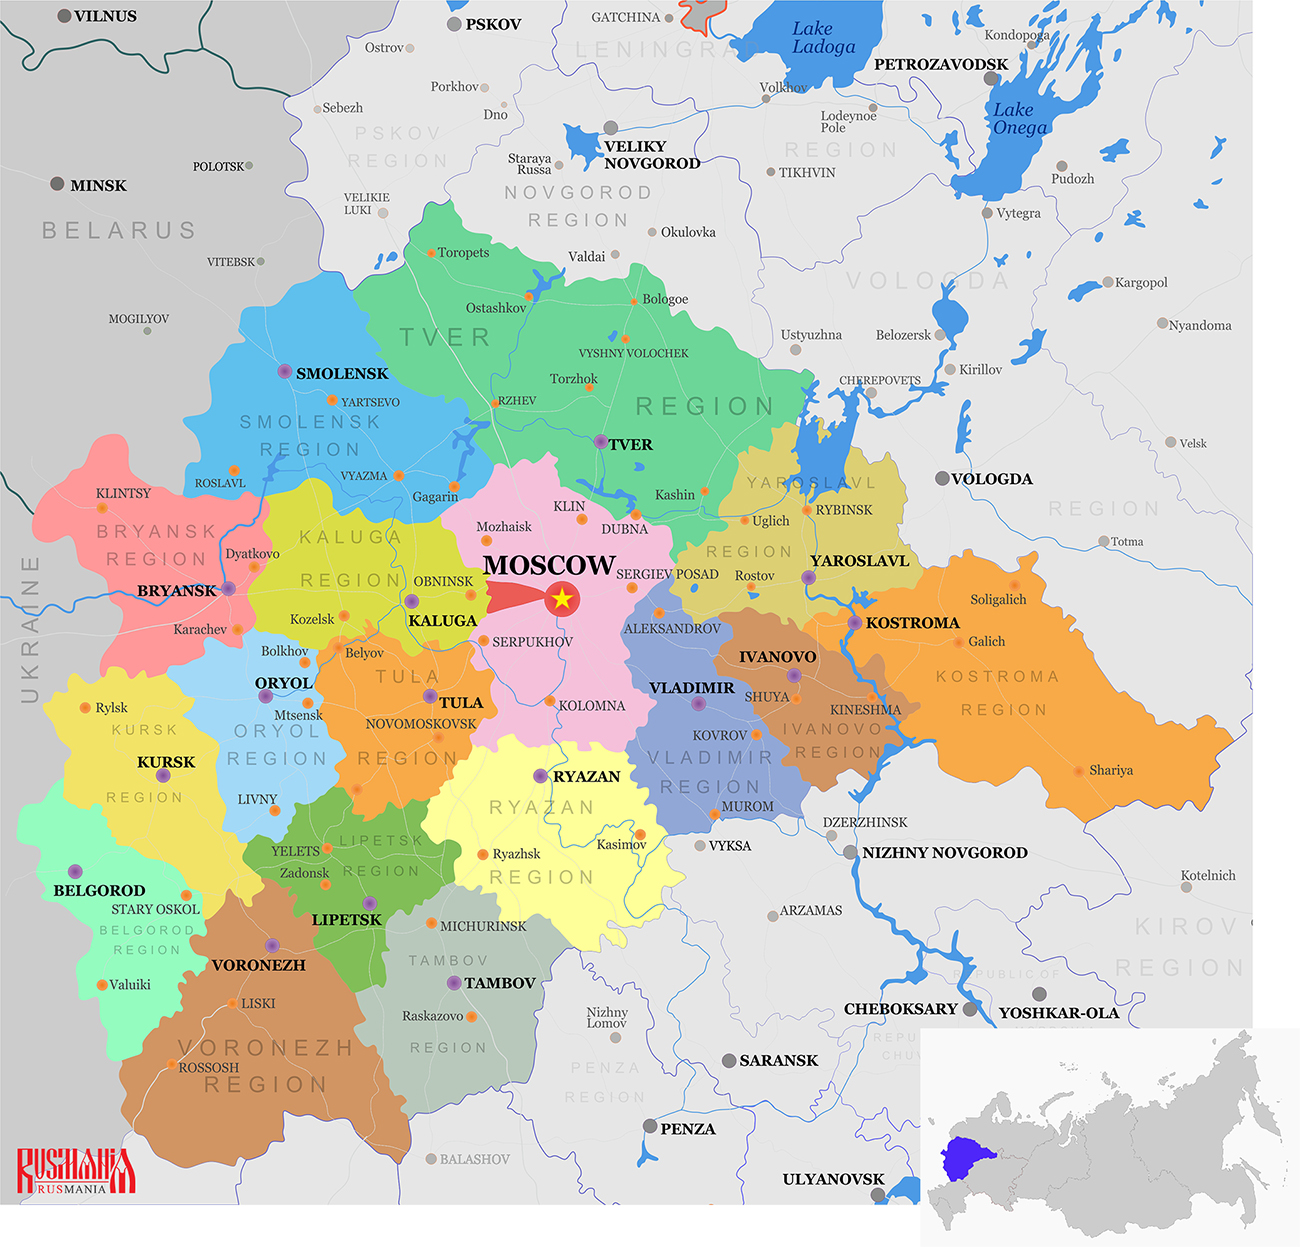 Gatchina: population, area, city history, geographical location